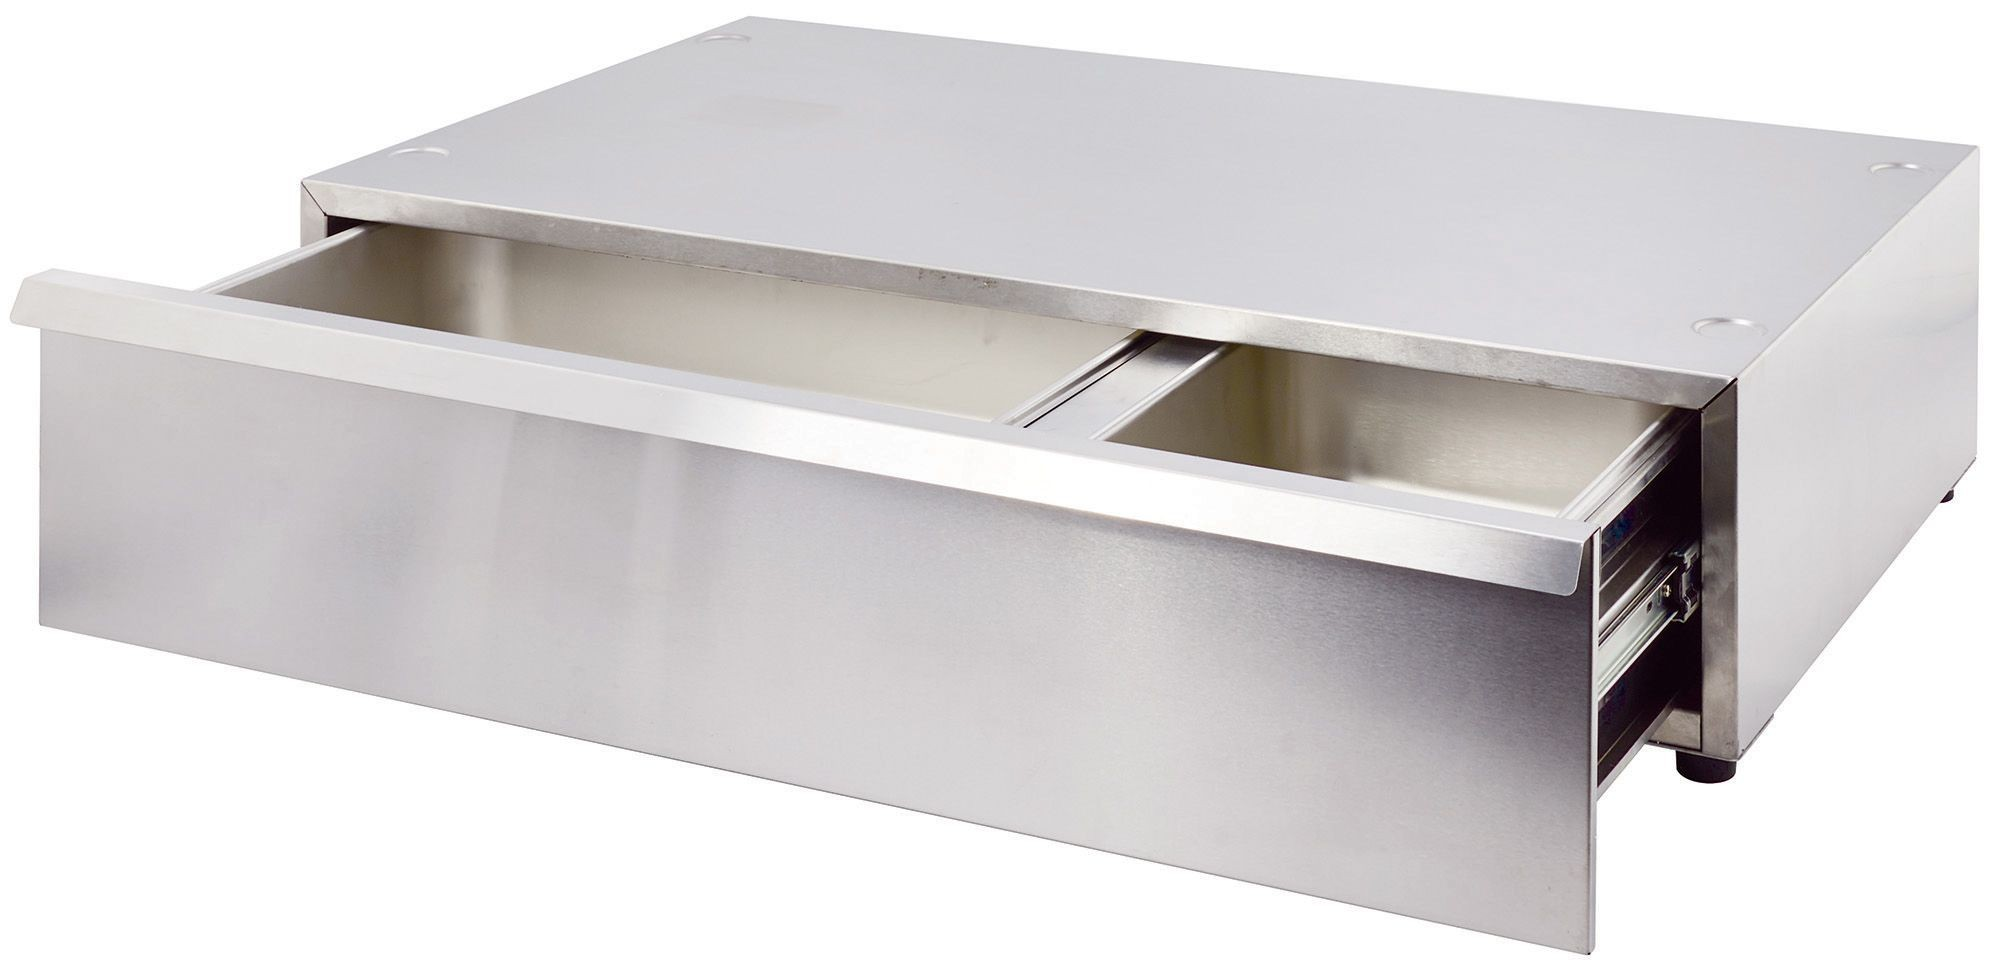 Winco EHD-50-BD Spectrum Bun Drawer for EHD-50 Hot Dog Roller